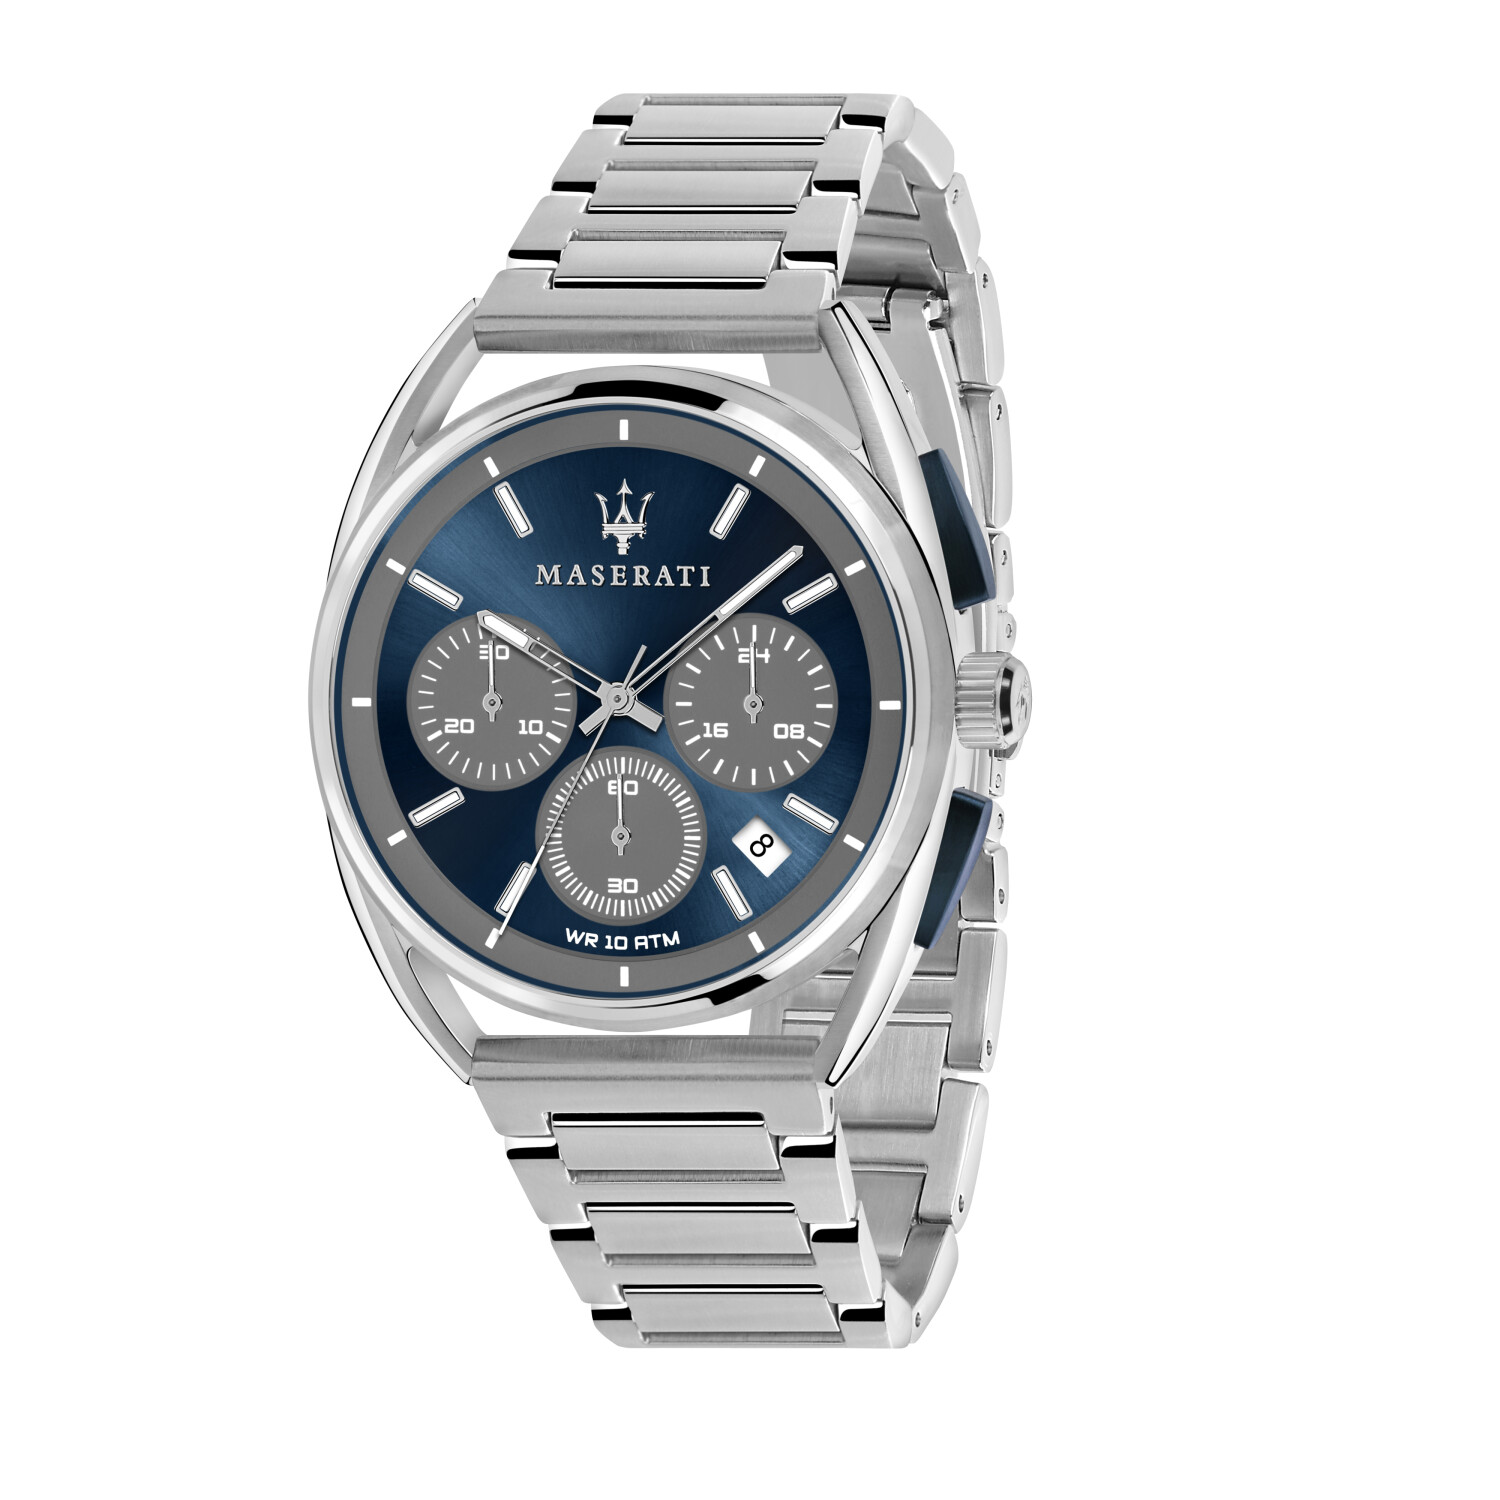 Maserati Watch Trimarano Chronograph, 24-Hour Display, Date Window-Blue / Grey